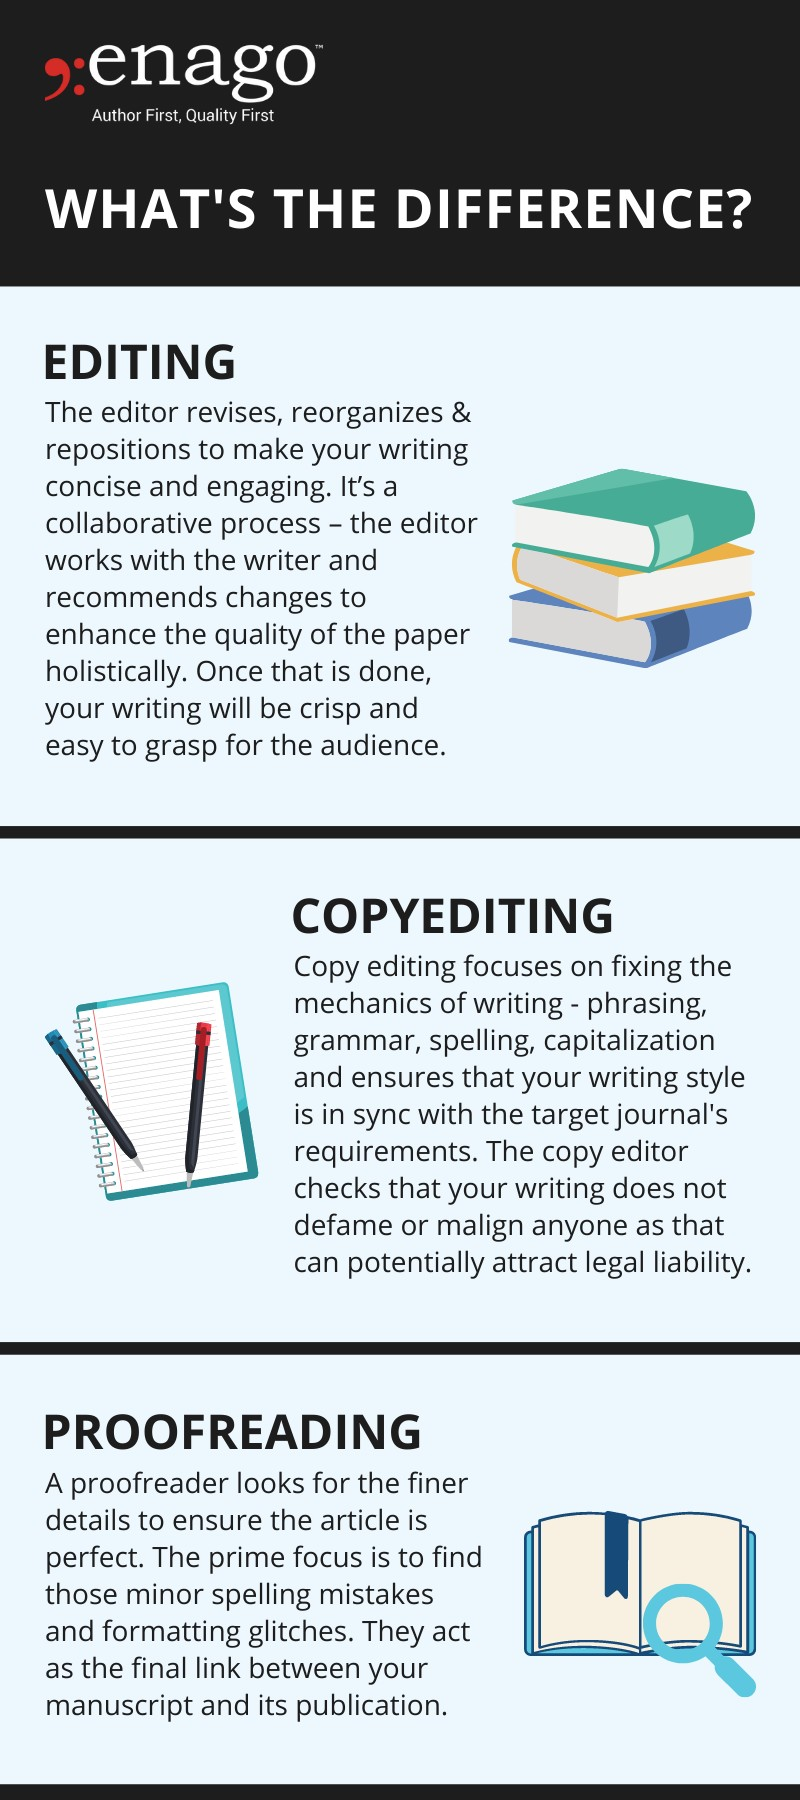 How are Editing, Copy Editing & Proofreading Different?